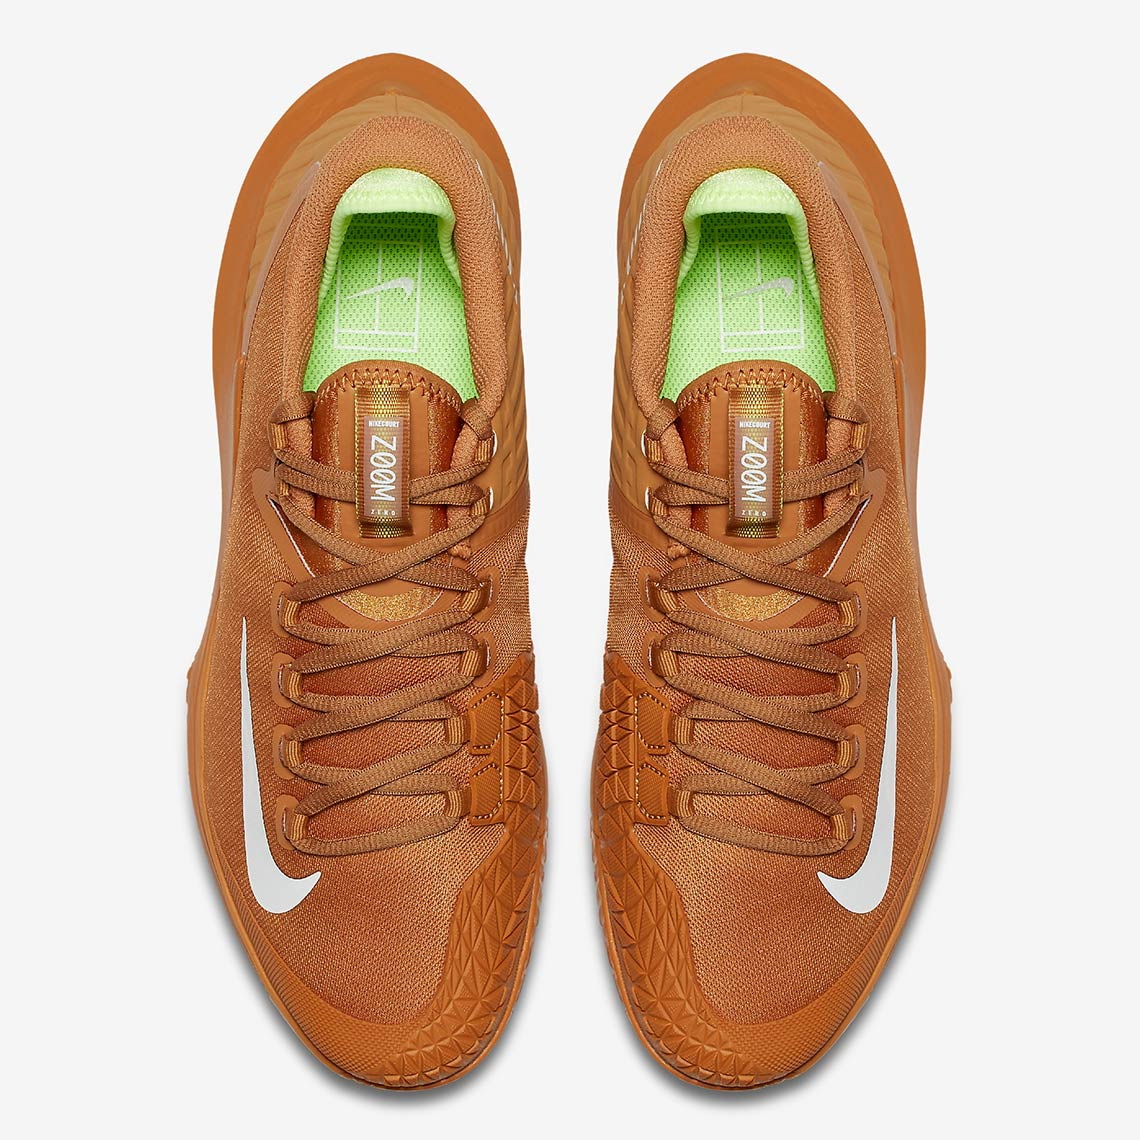 83290213aed6 NikeCourt Air Zoom Zero HC AVAILABLE AT Nike  130. Color  Flax Volt  Glow White Style Code  AA8018-200. Advertisement. show comments